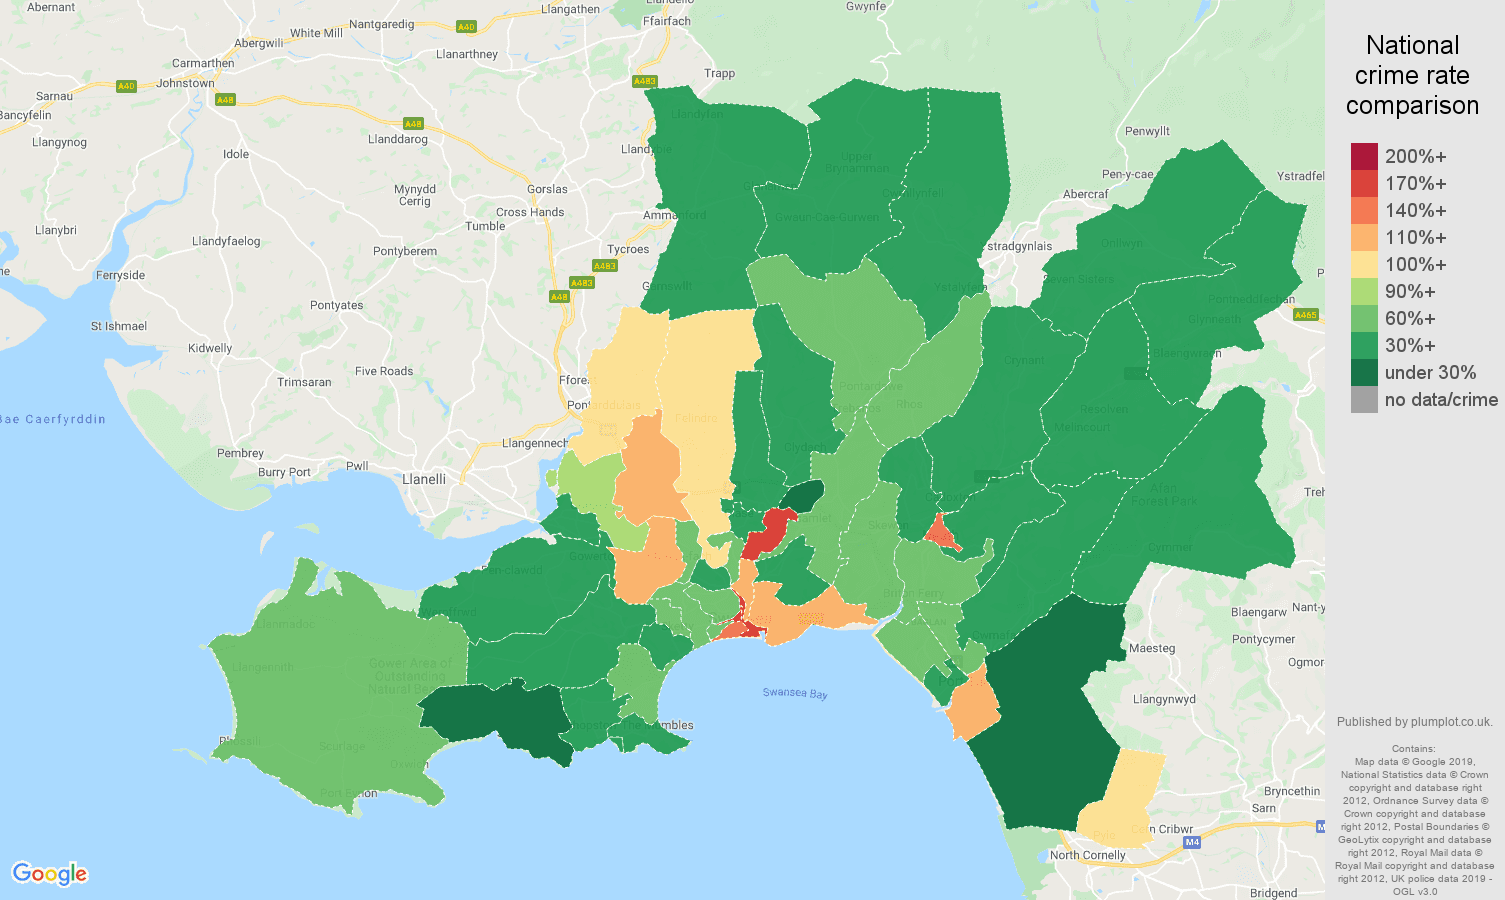 West Glamorgan other theft crime rate comparison map